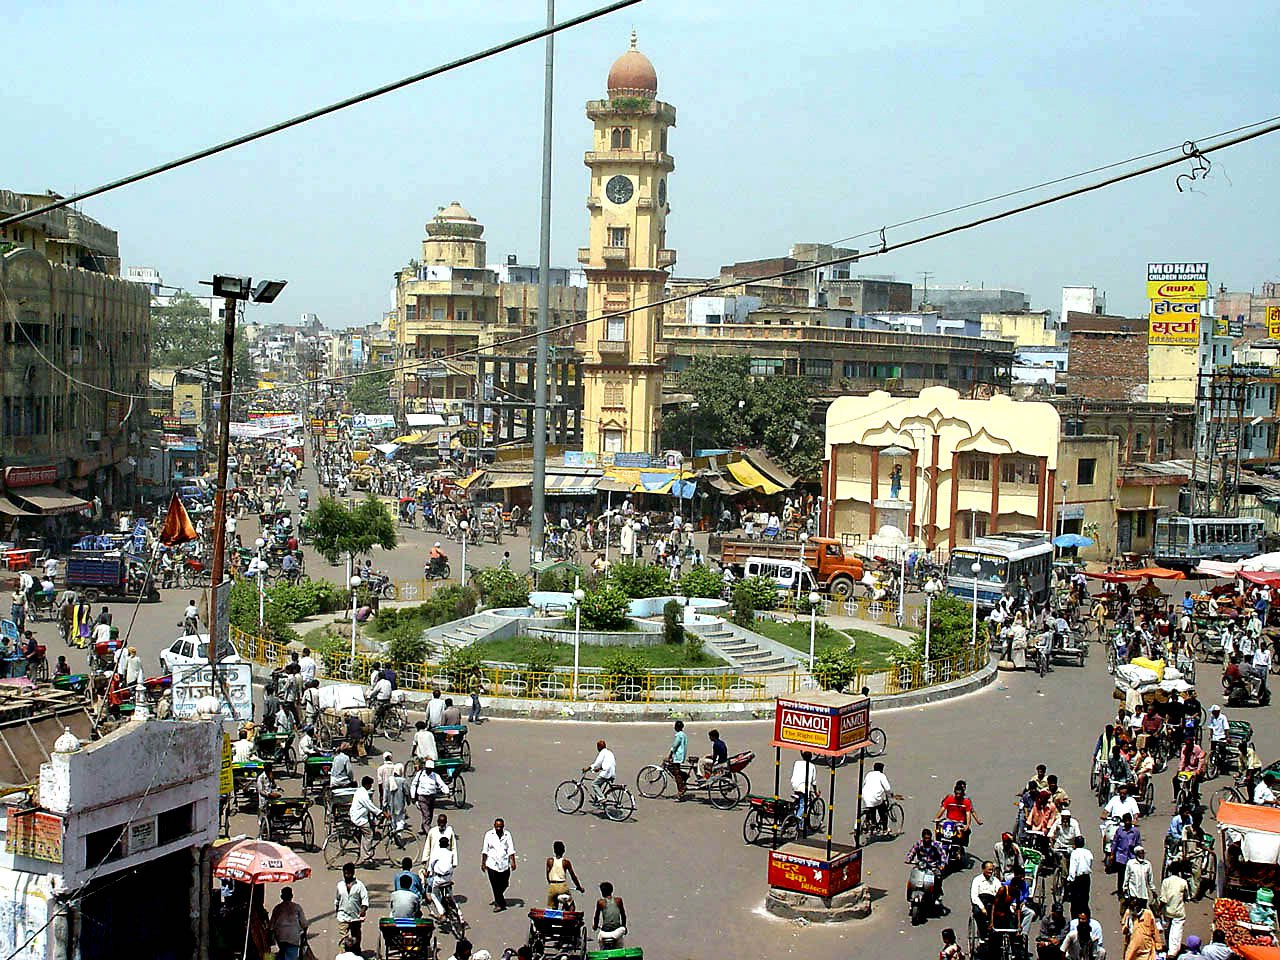 http://www.getbookcab.com/Admin/images/kanpur-city.jpg